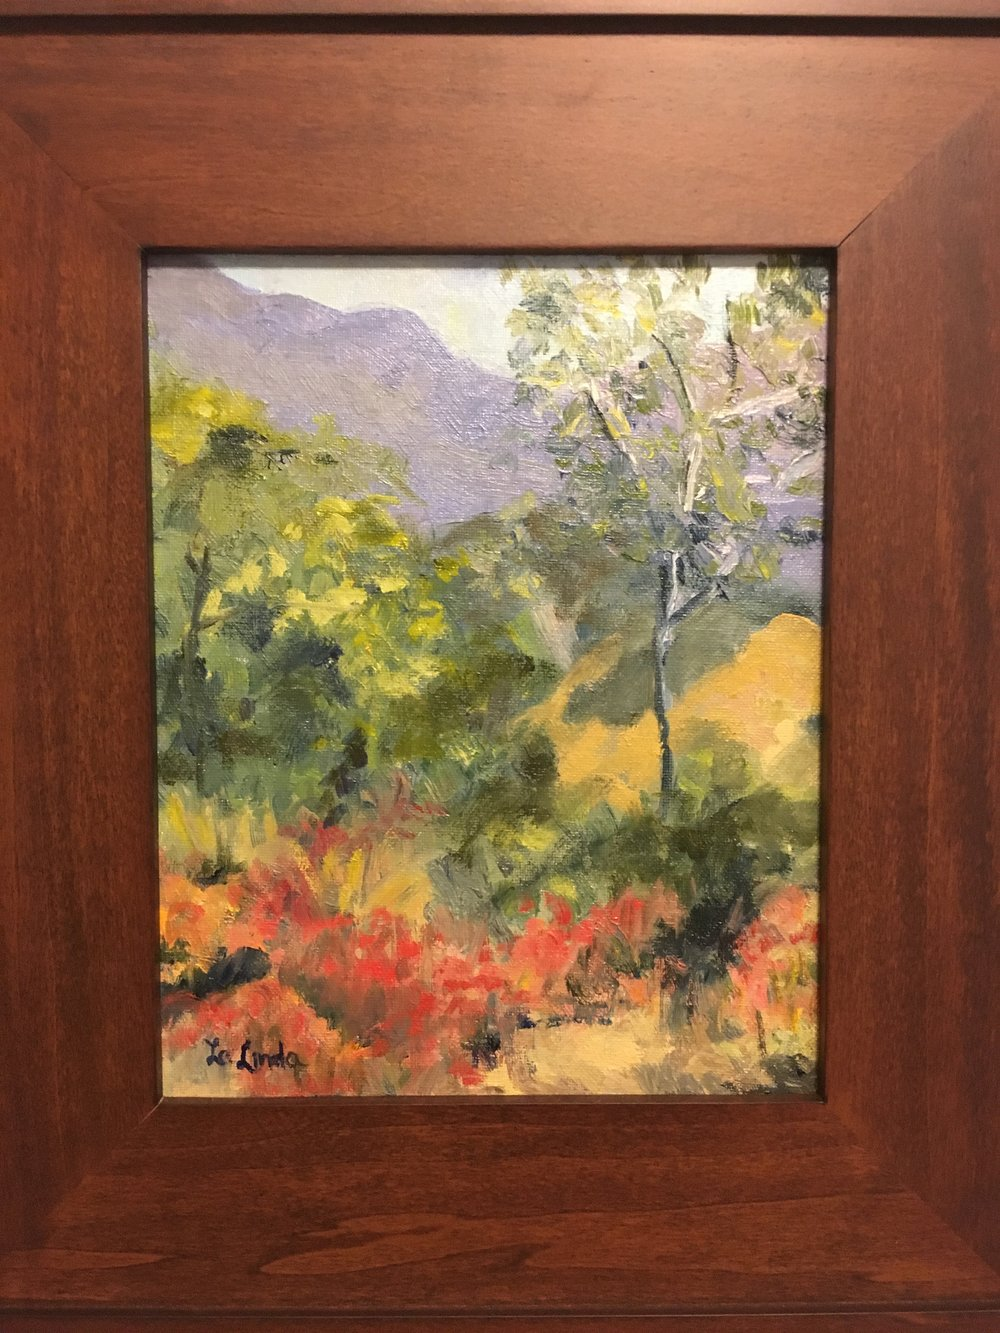 "Pretty Day, Oil 8x10"" $125 (framed)"